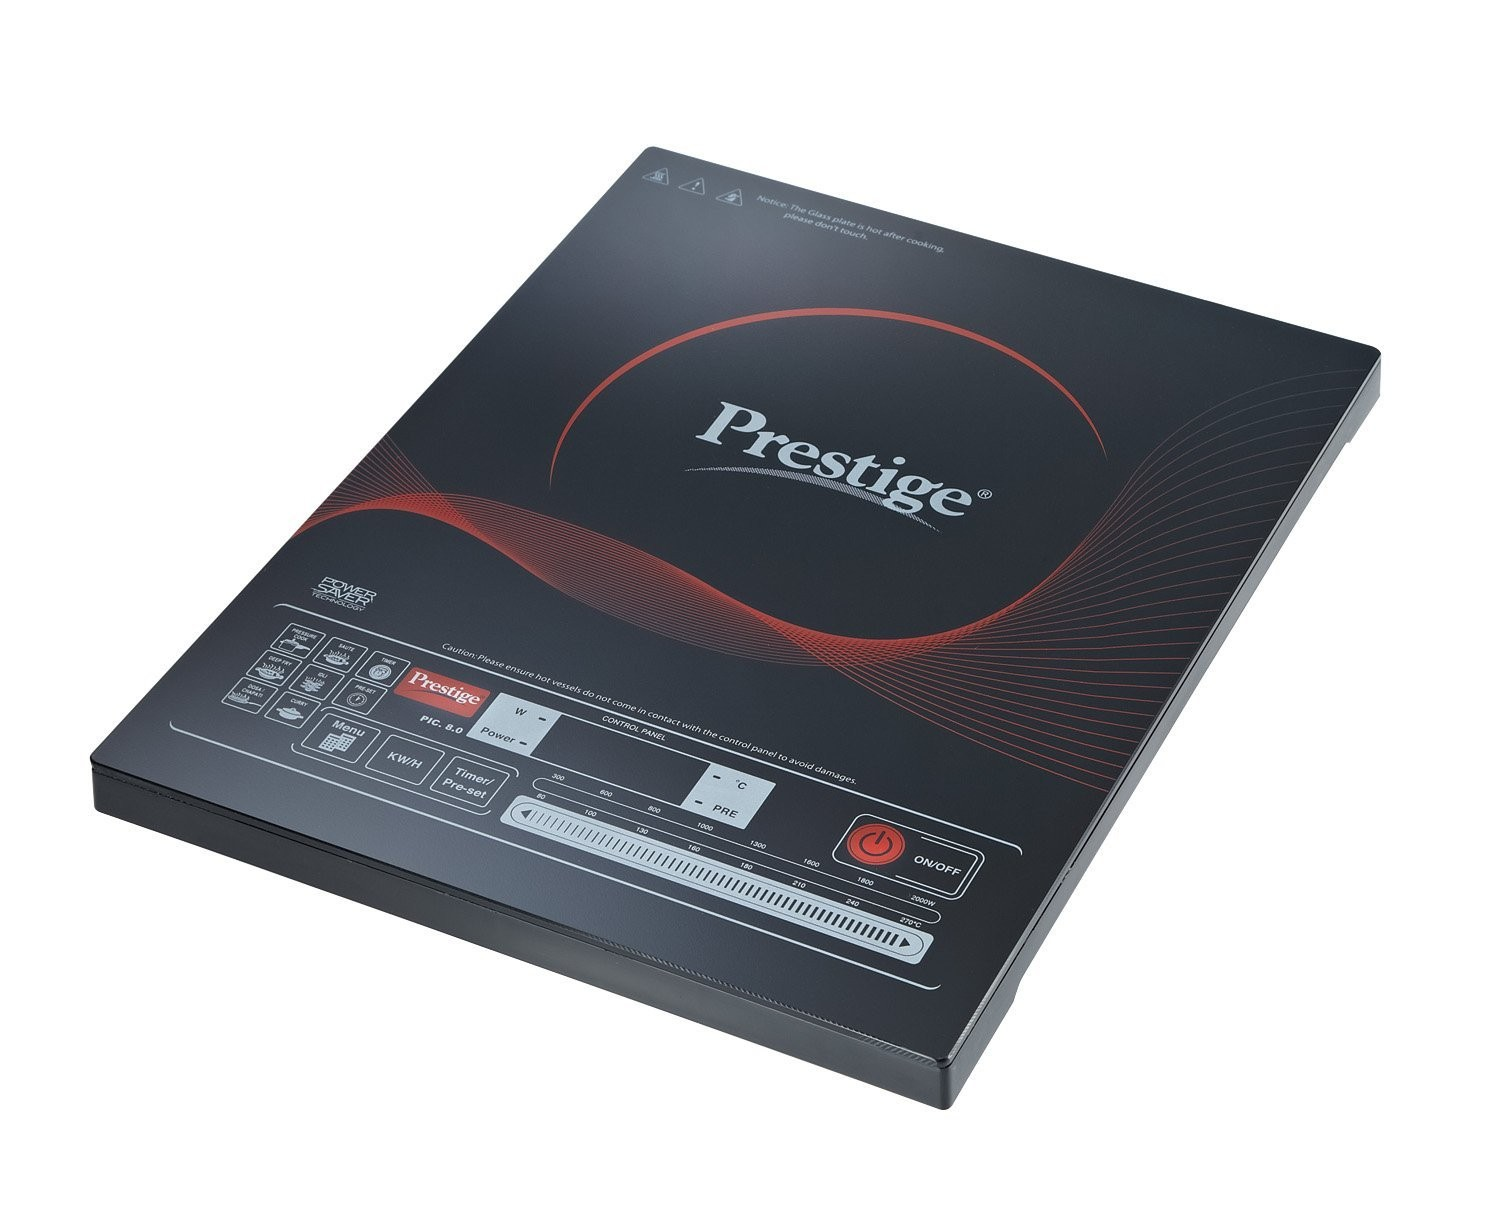 Prestige Induction Cooktop Pic 8.0